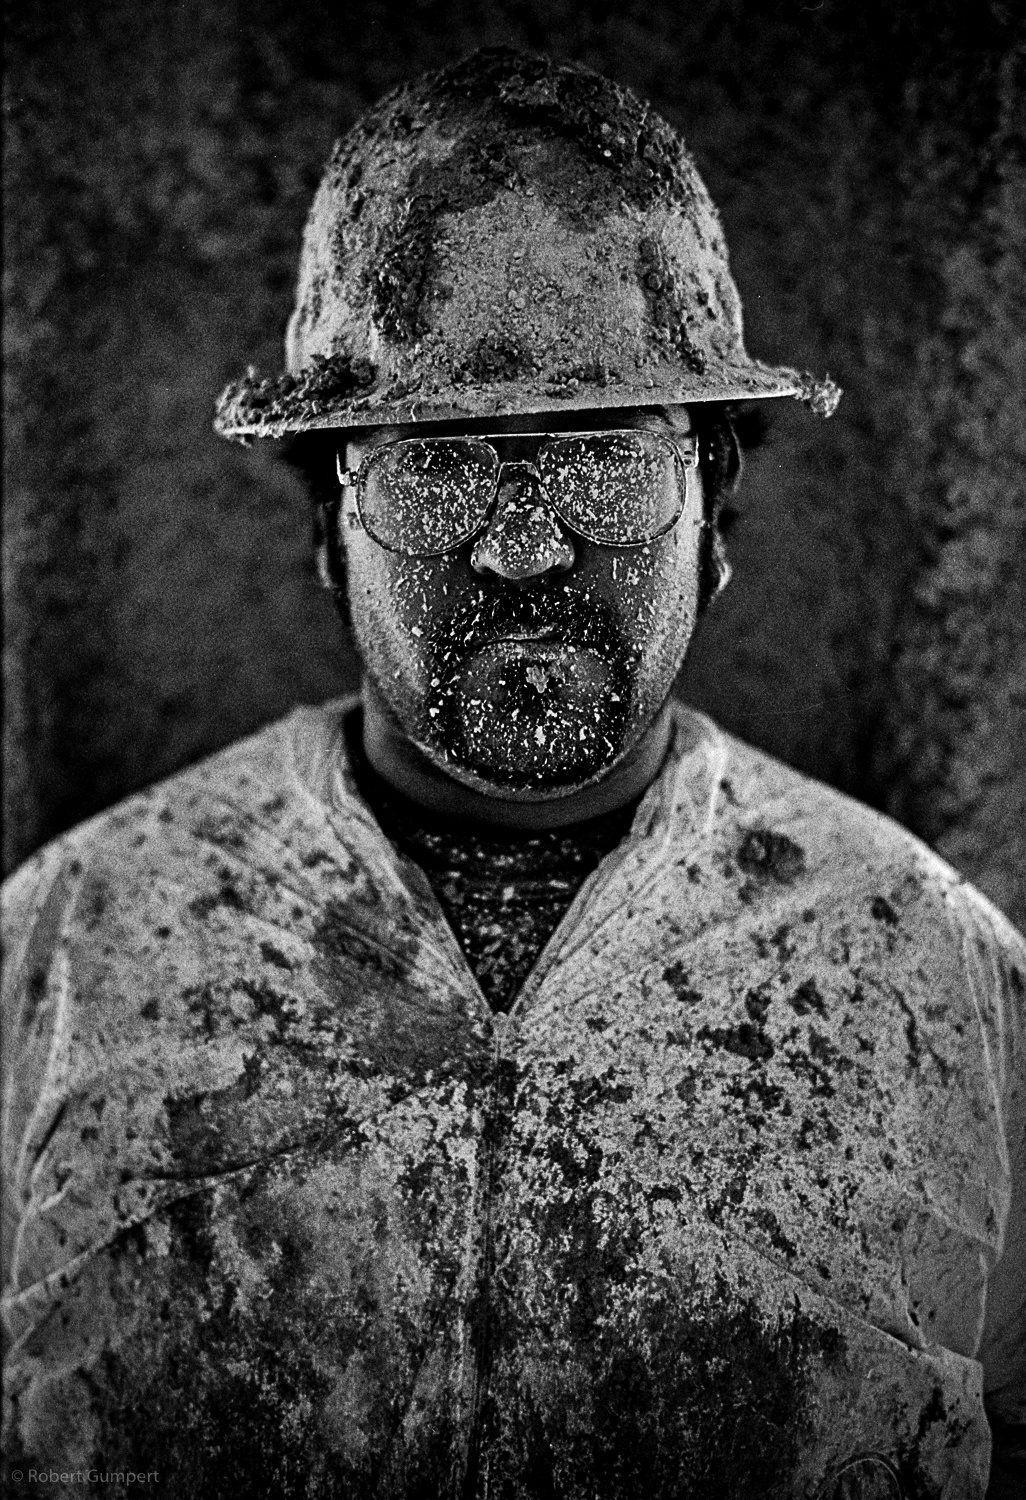 San Francisco, CA.  2000.  Apprentice contruction worker covered in insulation material.